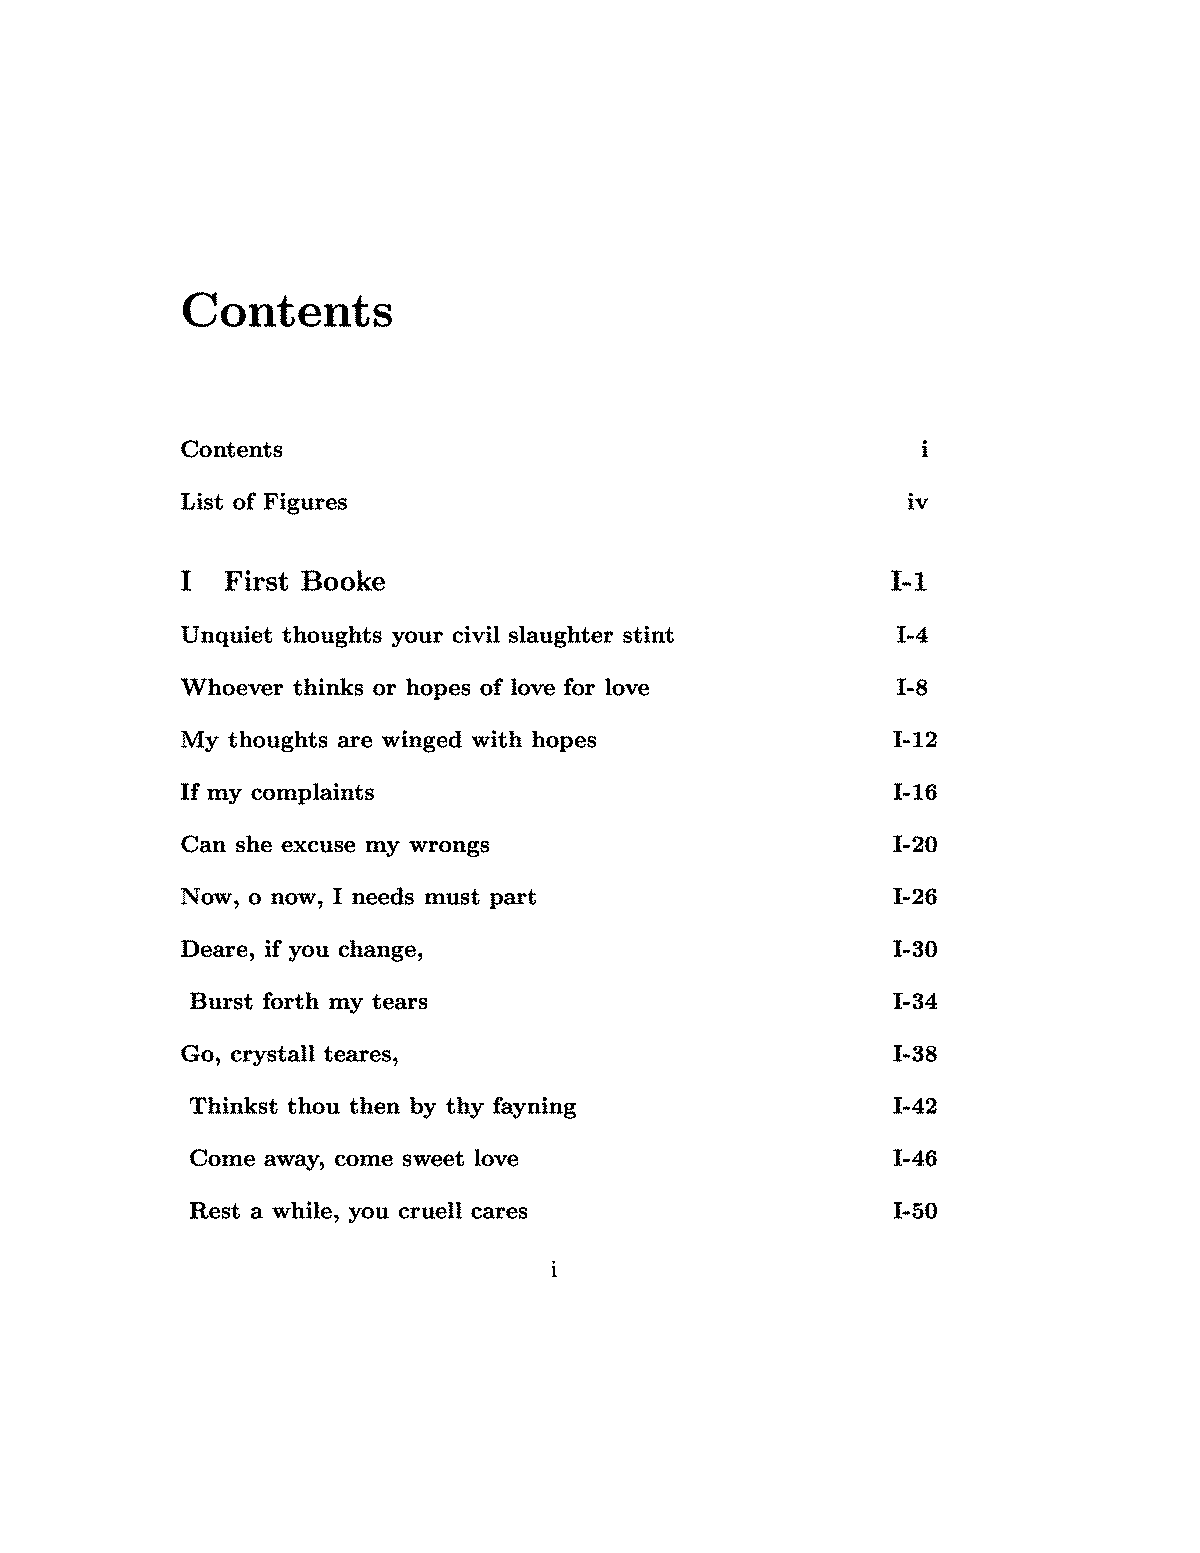 Dowland - complete works.pdf